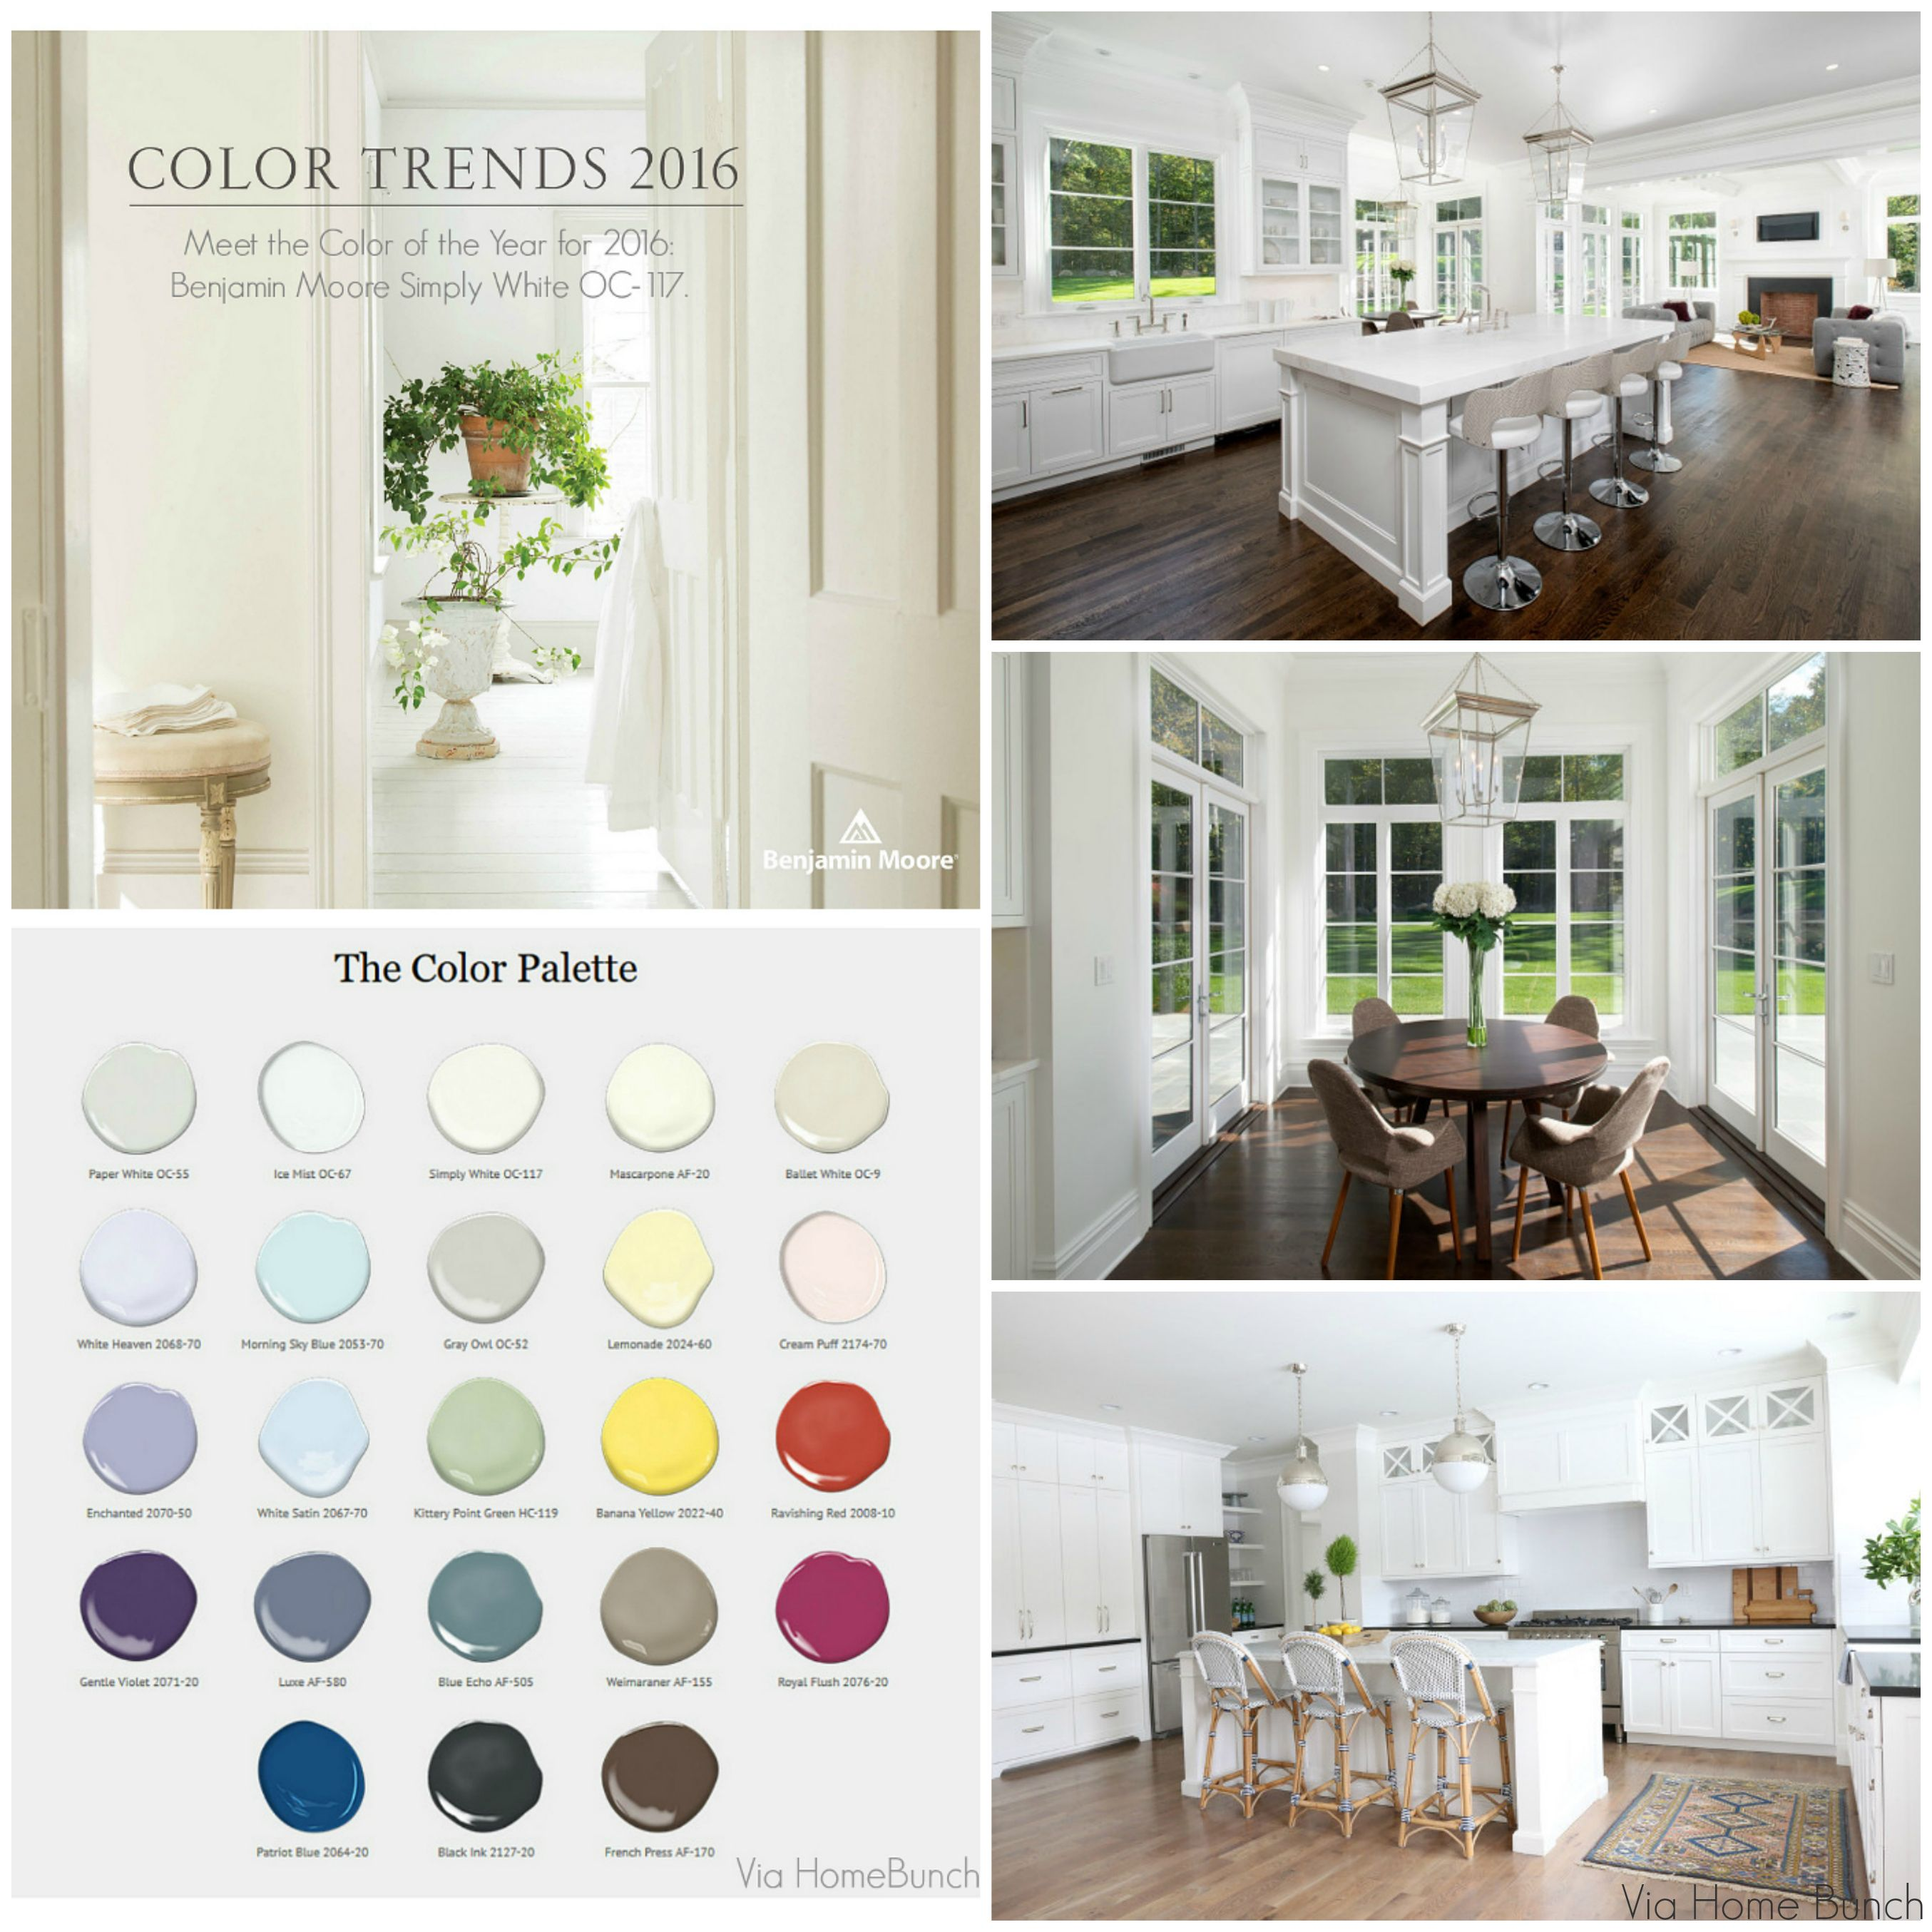 Benjamin Moore Colors For Your Living Room Decor: Benjamin Moore Color Of The Year 2016: Simply White, Color